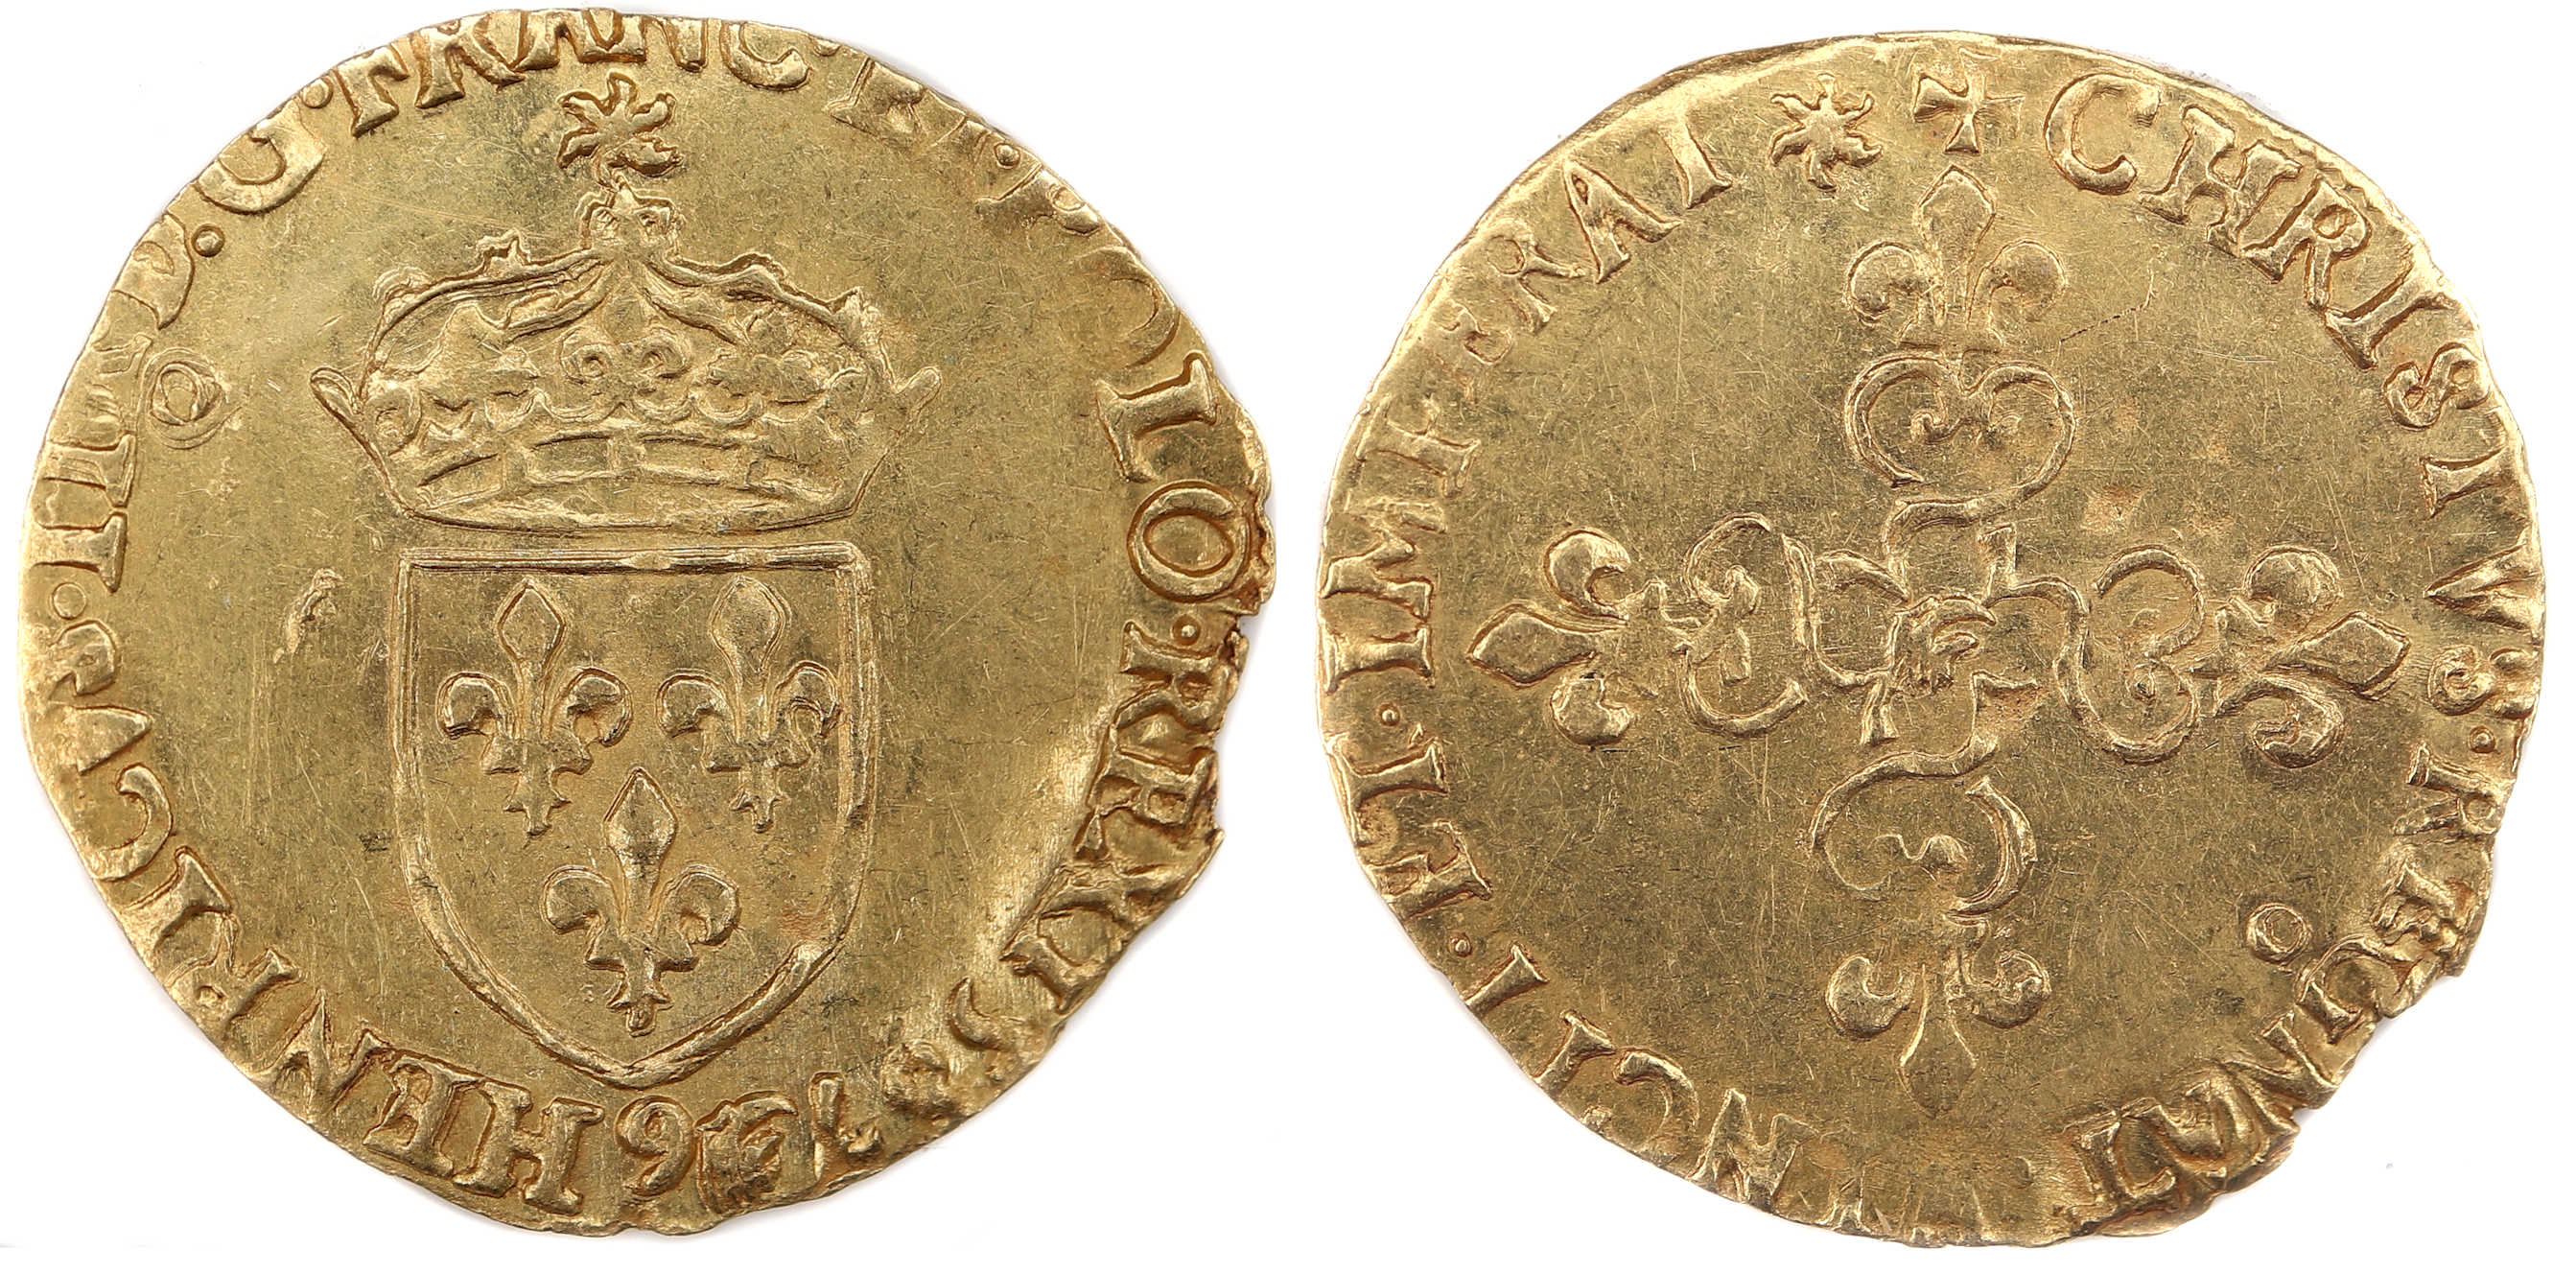 HENRI III ECU OR 1587 RENNES